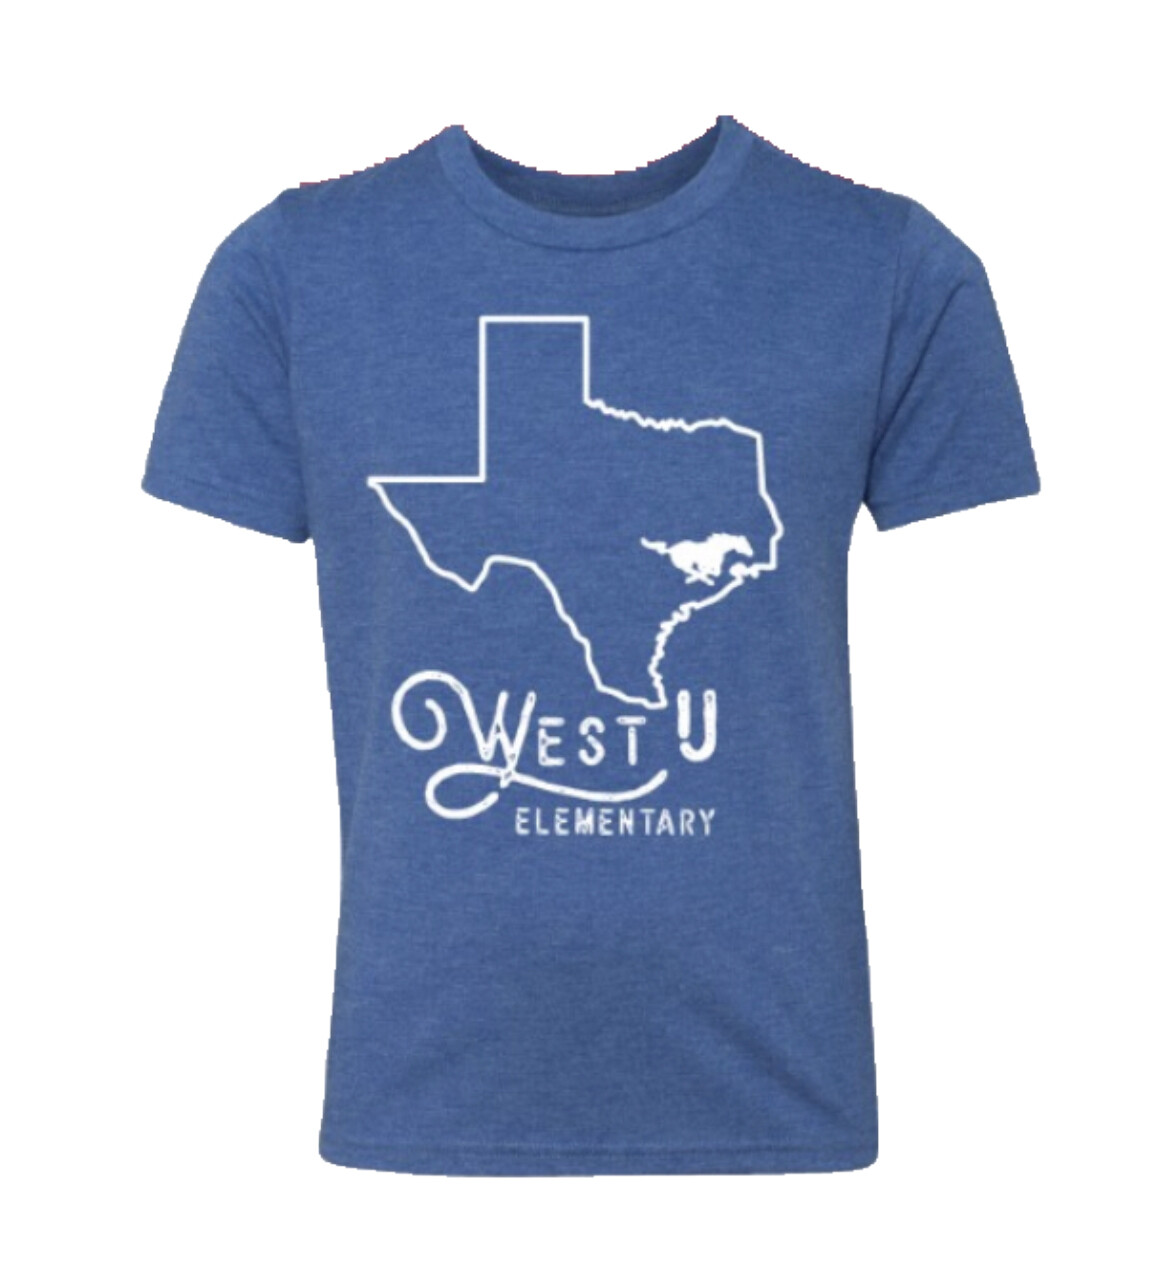 Youth Blue Triblend Texas Home Tee - Large